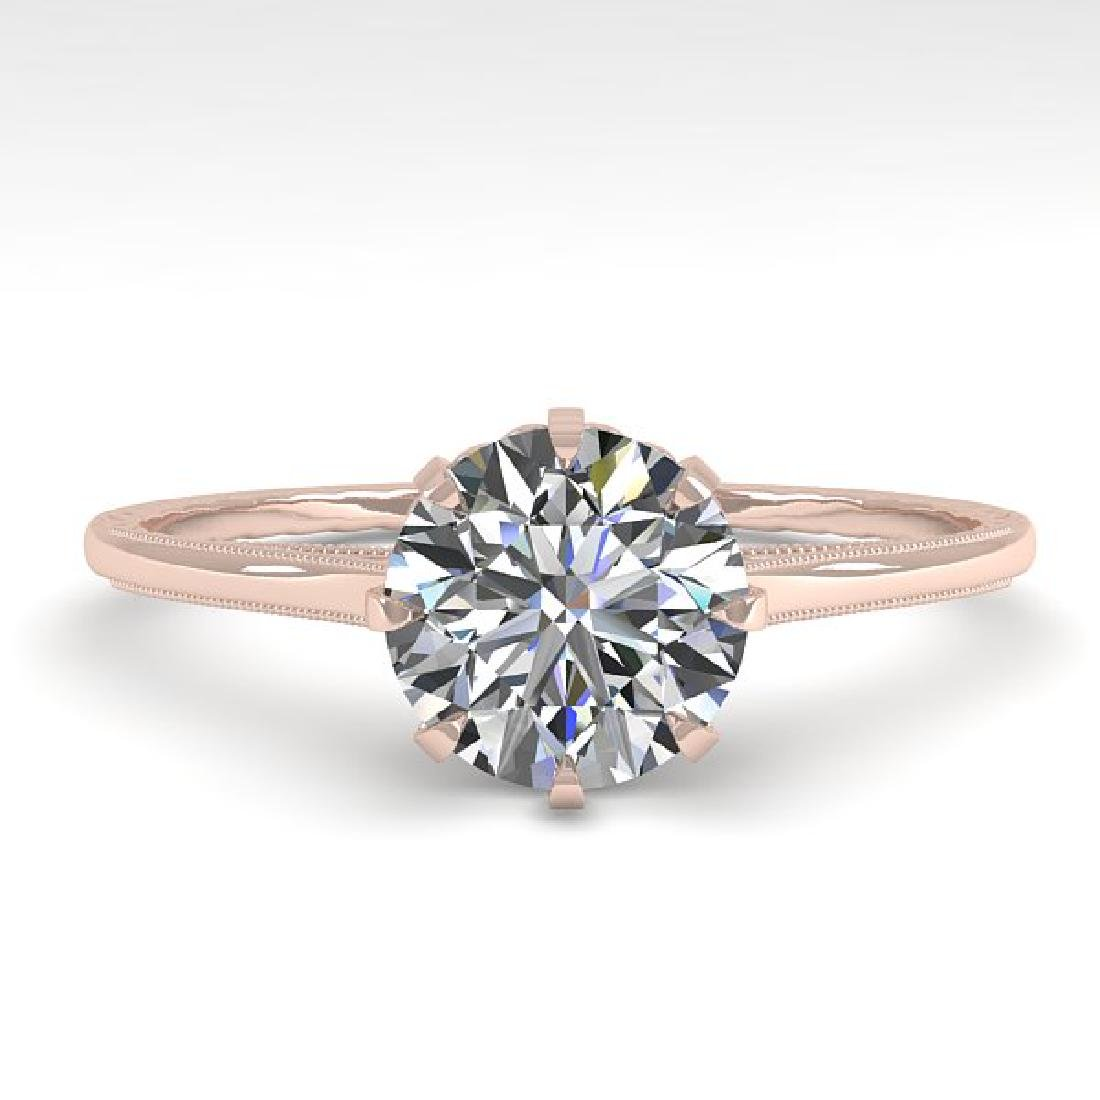 1.01 CTW Certified VS/SI Diamond Ring 14K Rose Gold